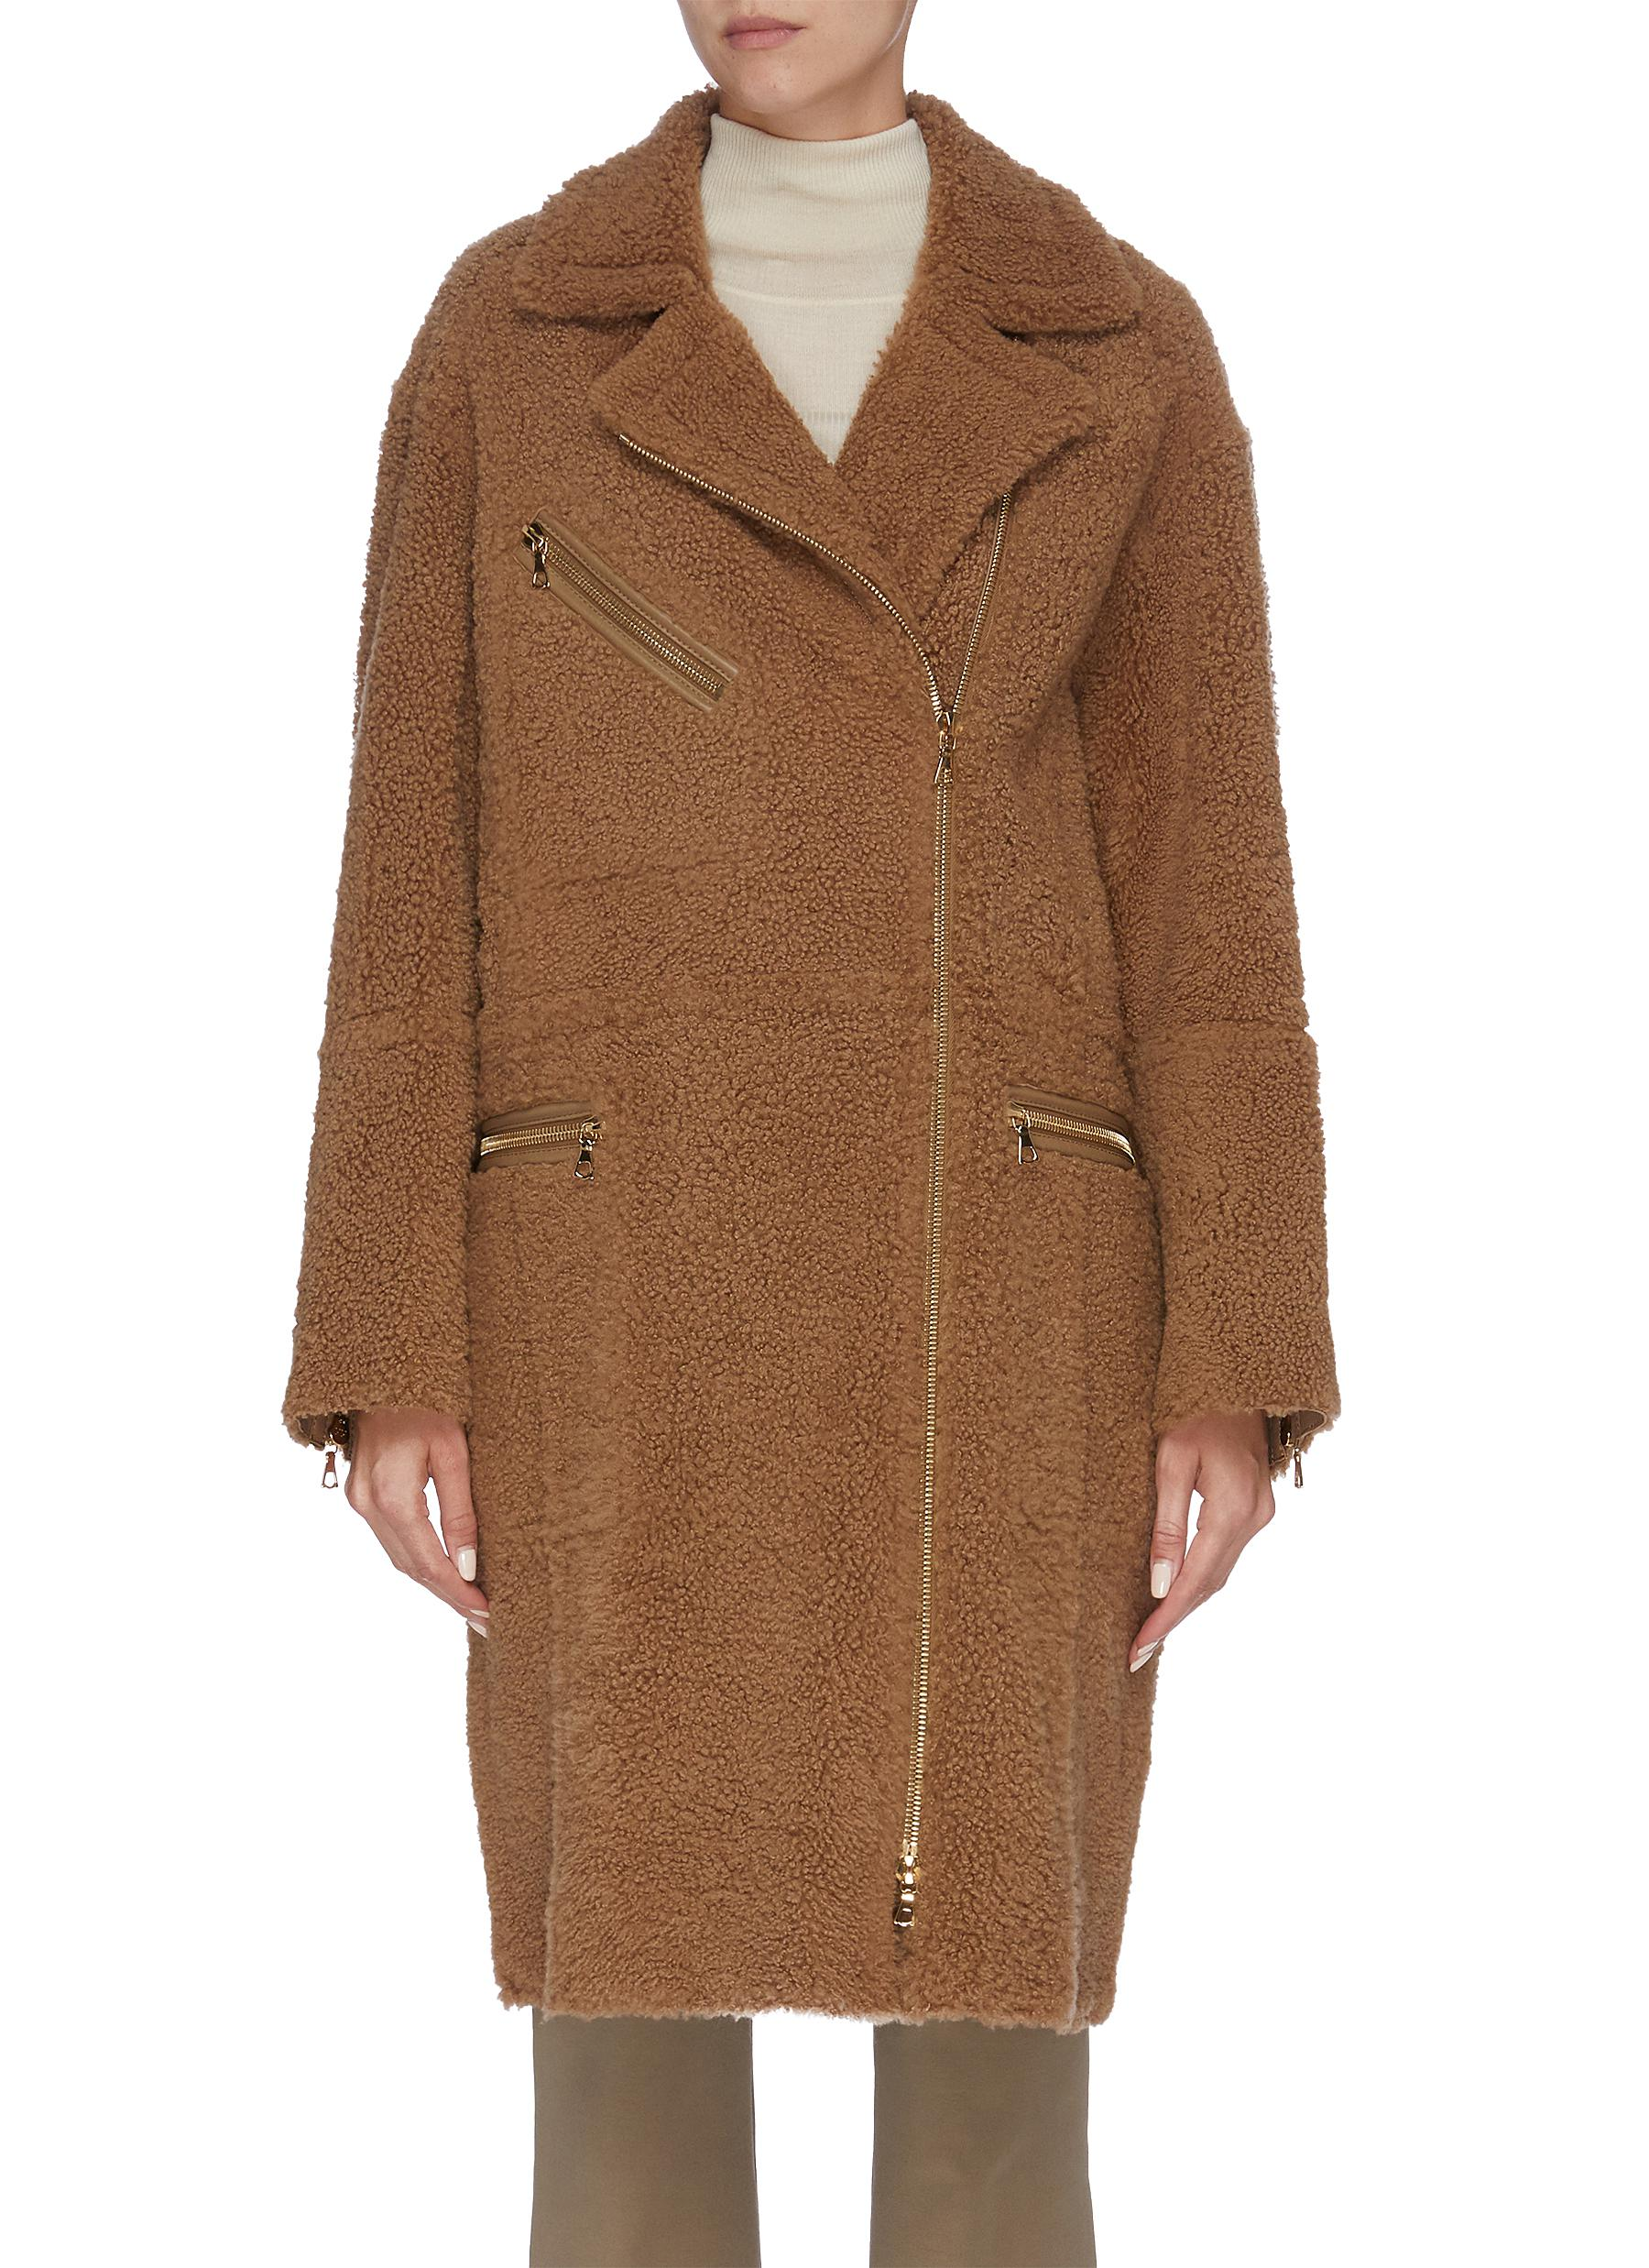 Merinillo double breasted lambskin shearling coat by Yves Salomon